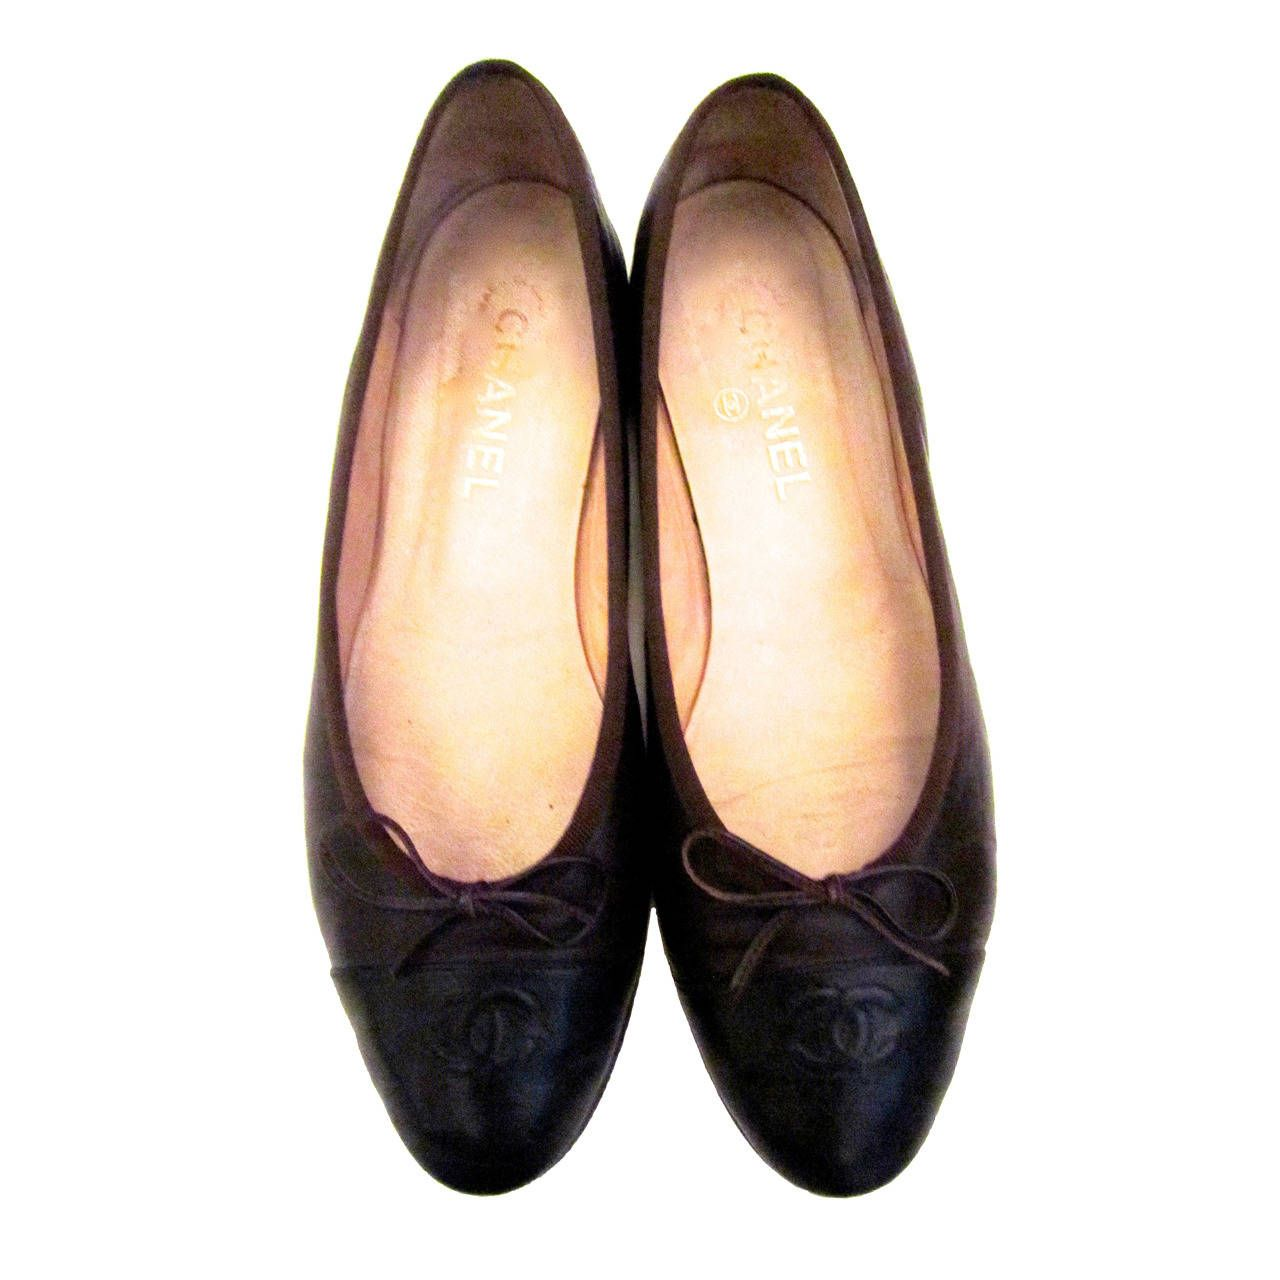 8446d937271c2 Chanel Ballerina Flats - Brown Lambskin with Black Toe - Size 40.5 | From a  collection